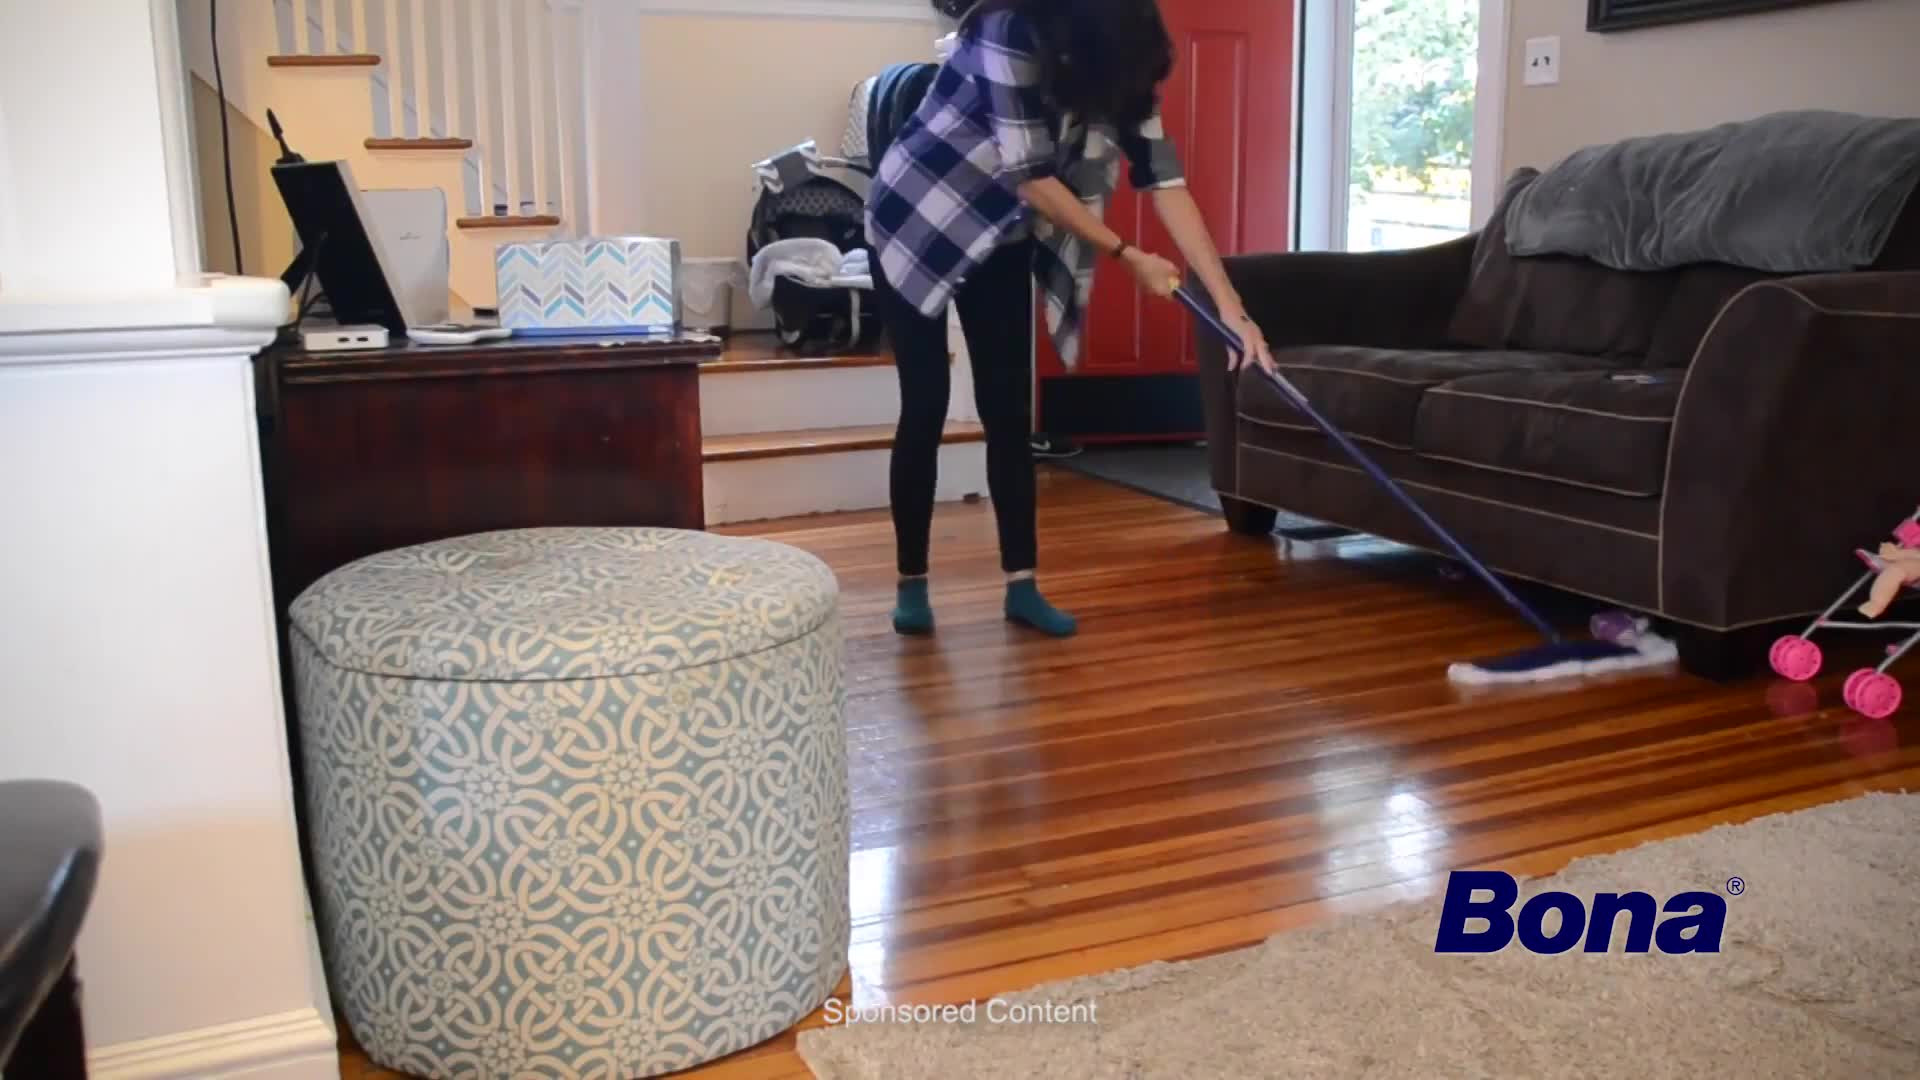 bona ultimate hardwood floor care system of bona ultimate hardwood floor care kit blue white kits floor inside bona ultimate hardwood floor care kit blue white kits bona 10 pack disposable dusting cloths in